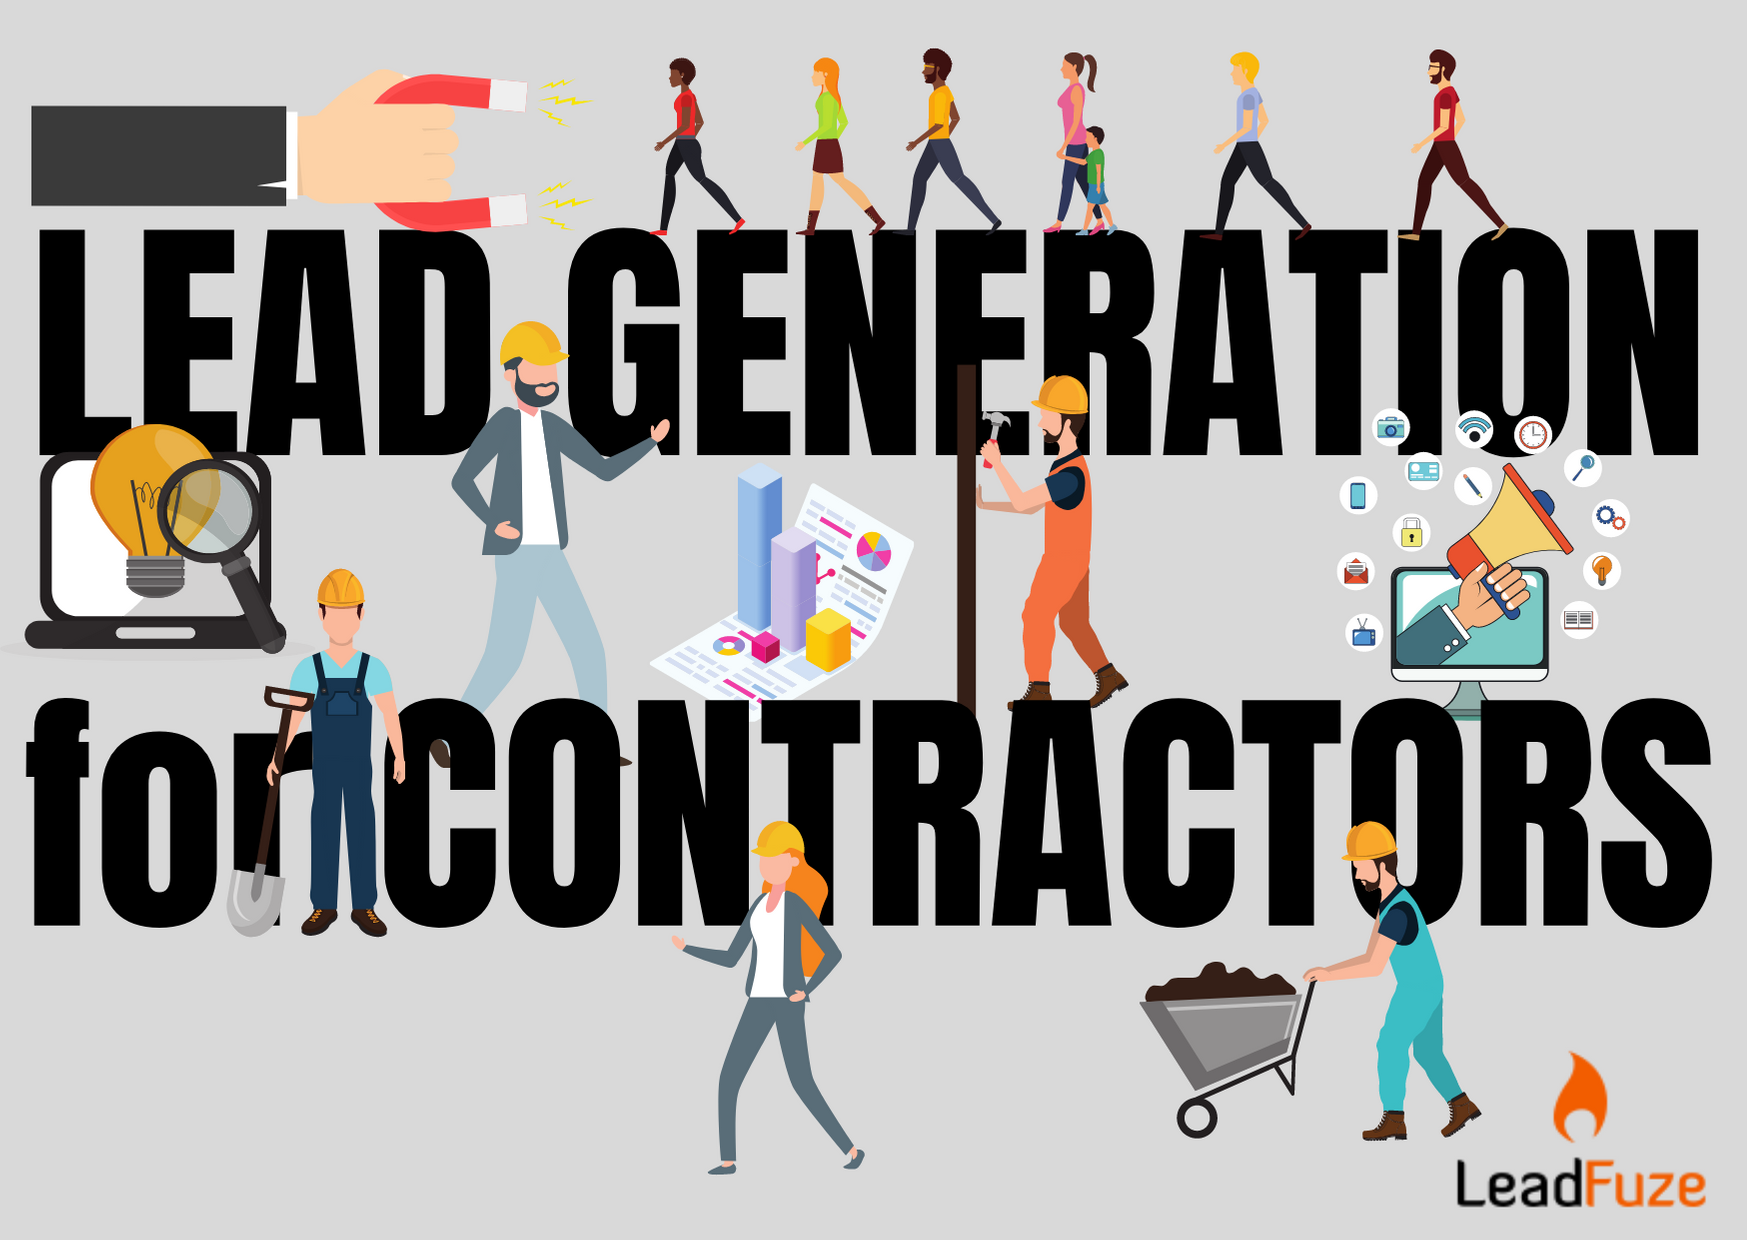 Lead Generation for Contractors